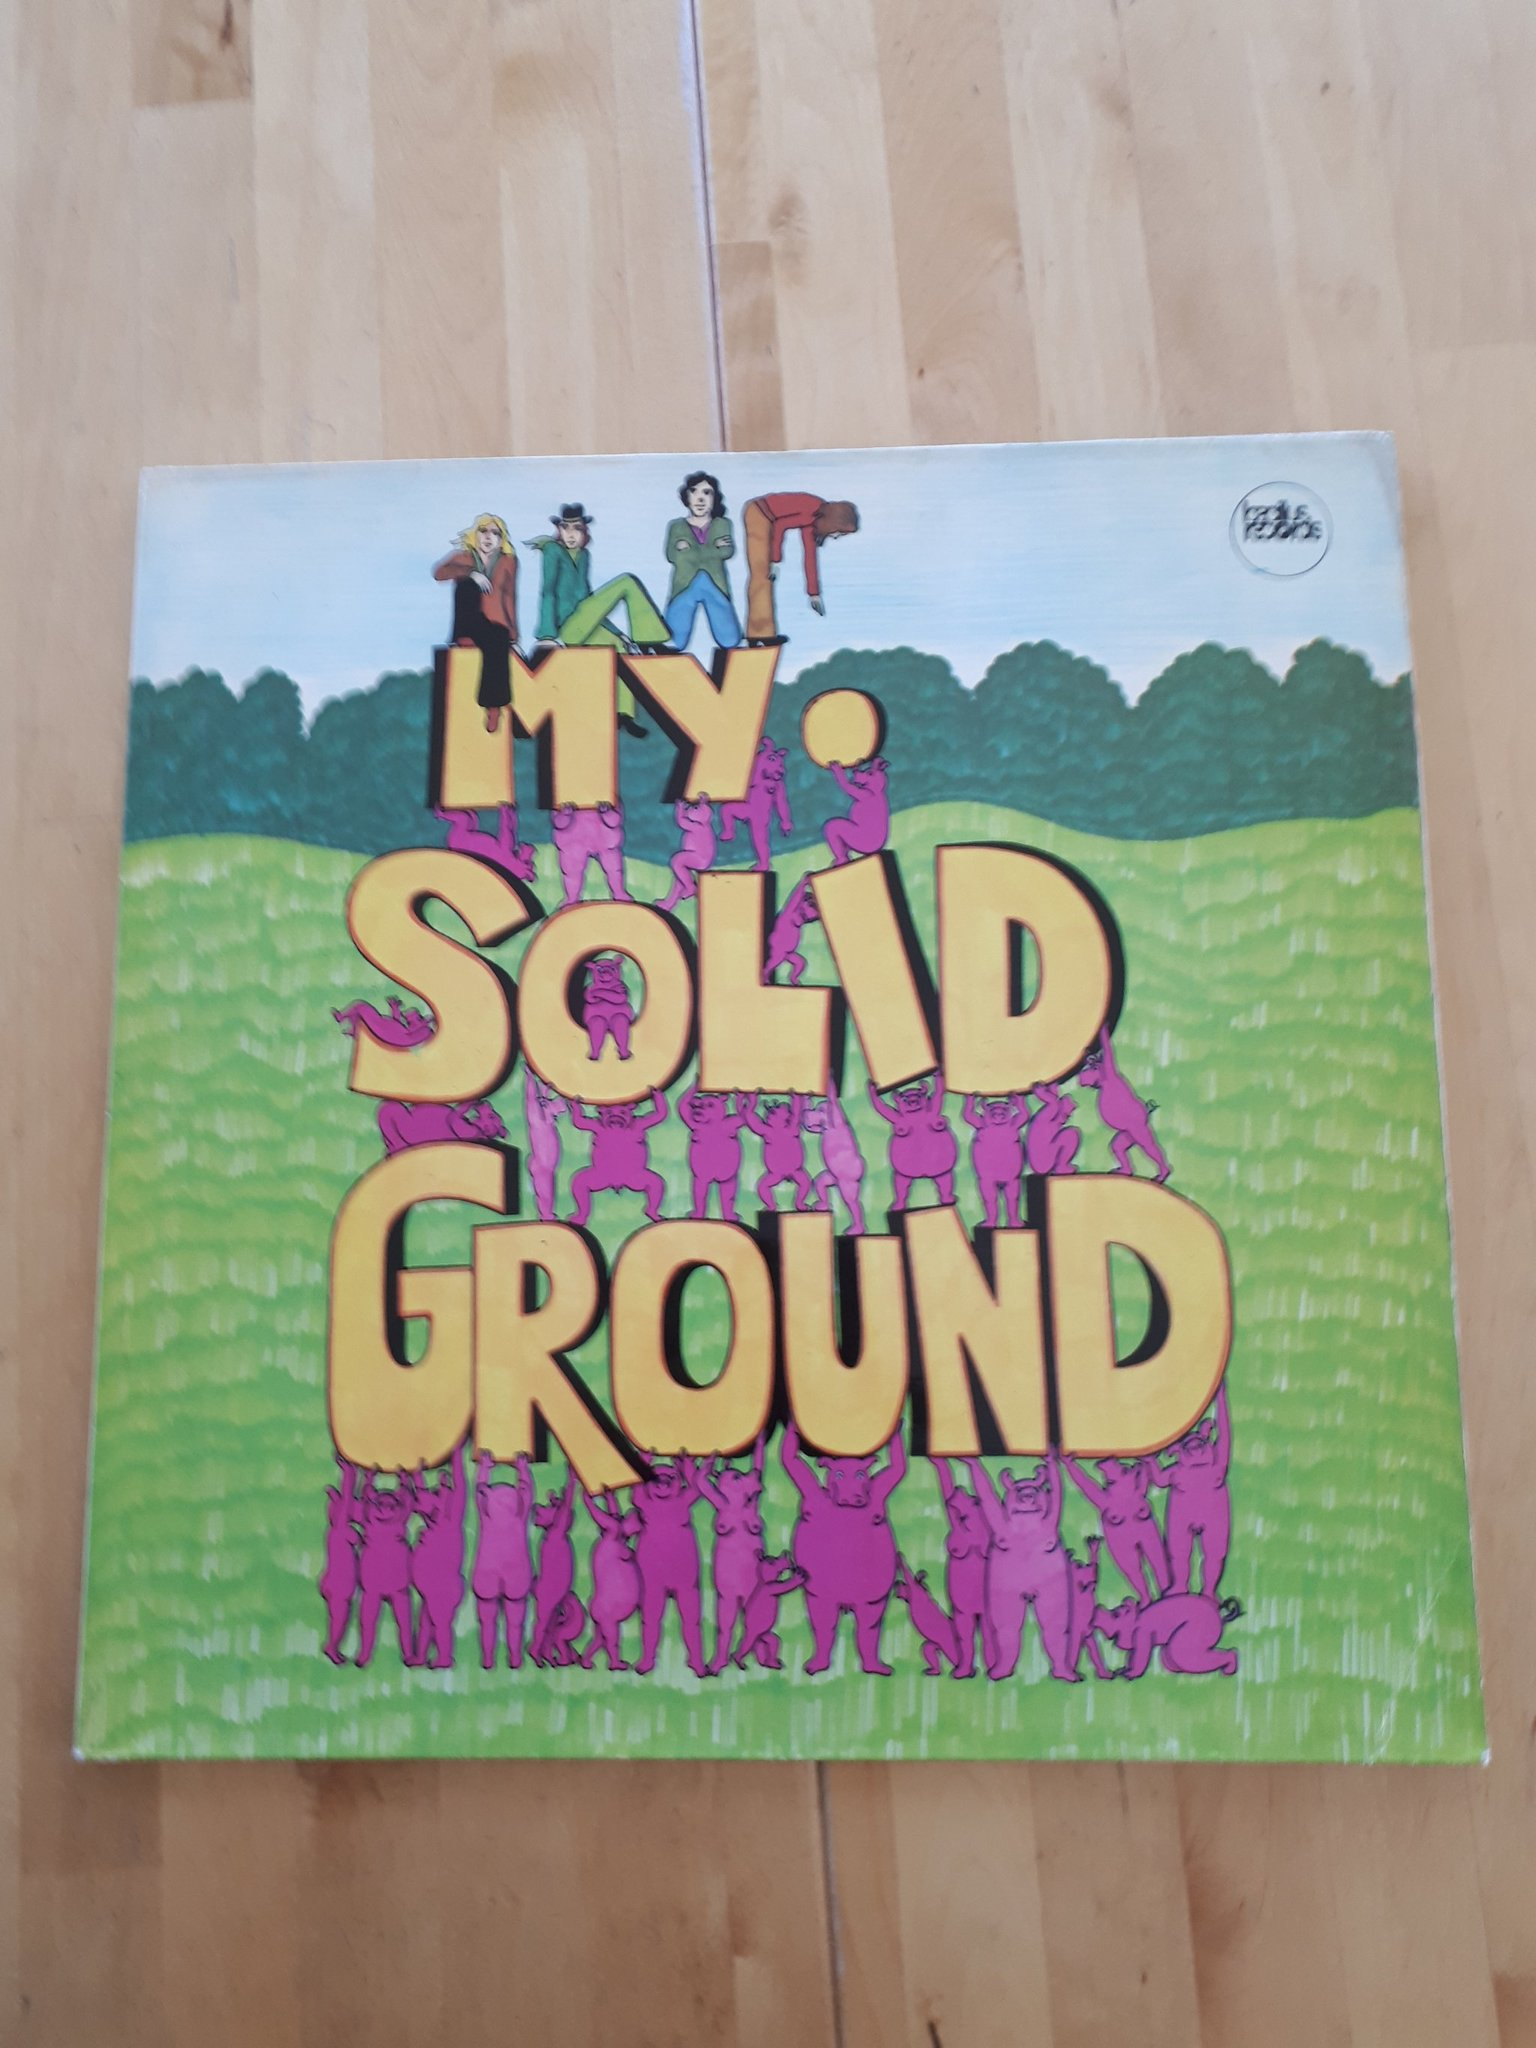 MY SOLID GROUND (orig bacillus records)